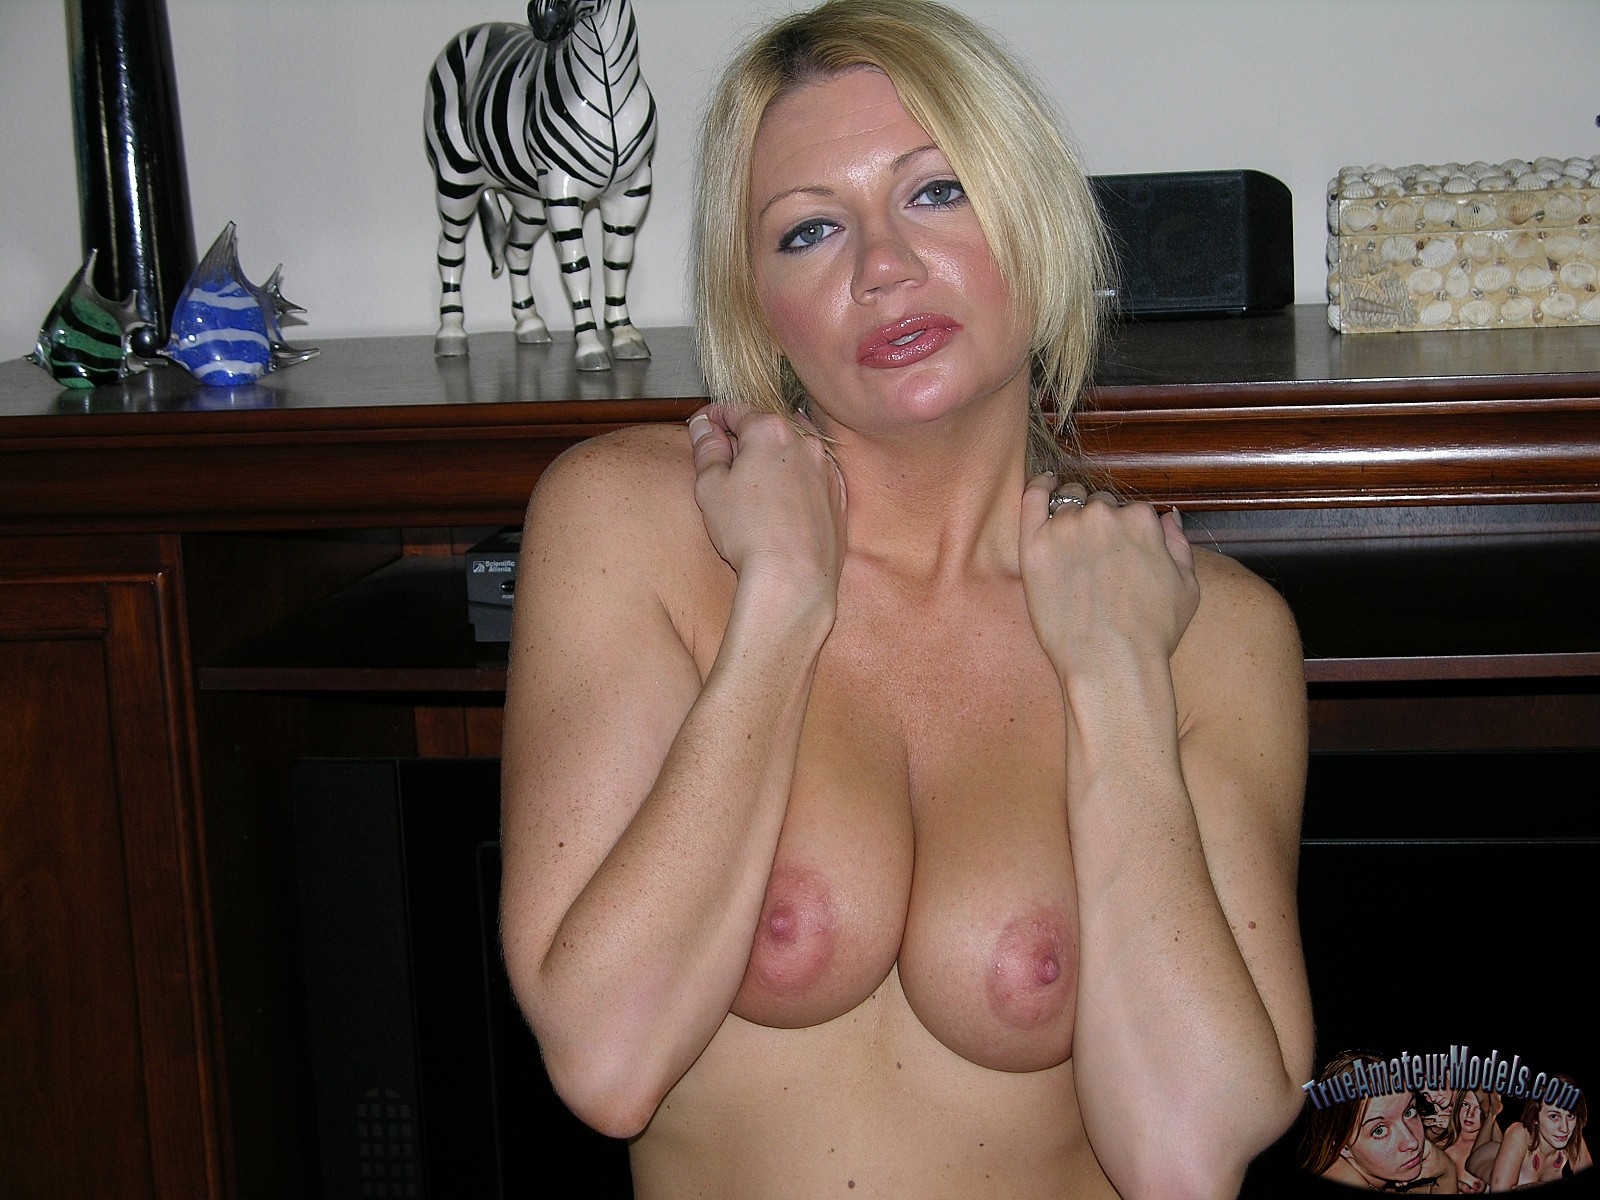 Uk busty blonde milf pammie anderson teases her pink shaved pussy